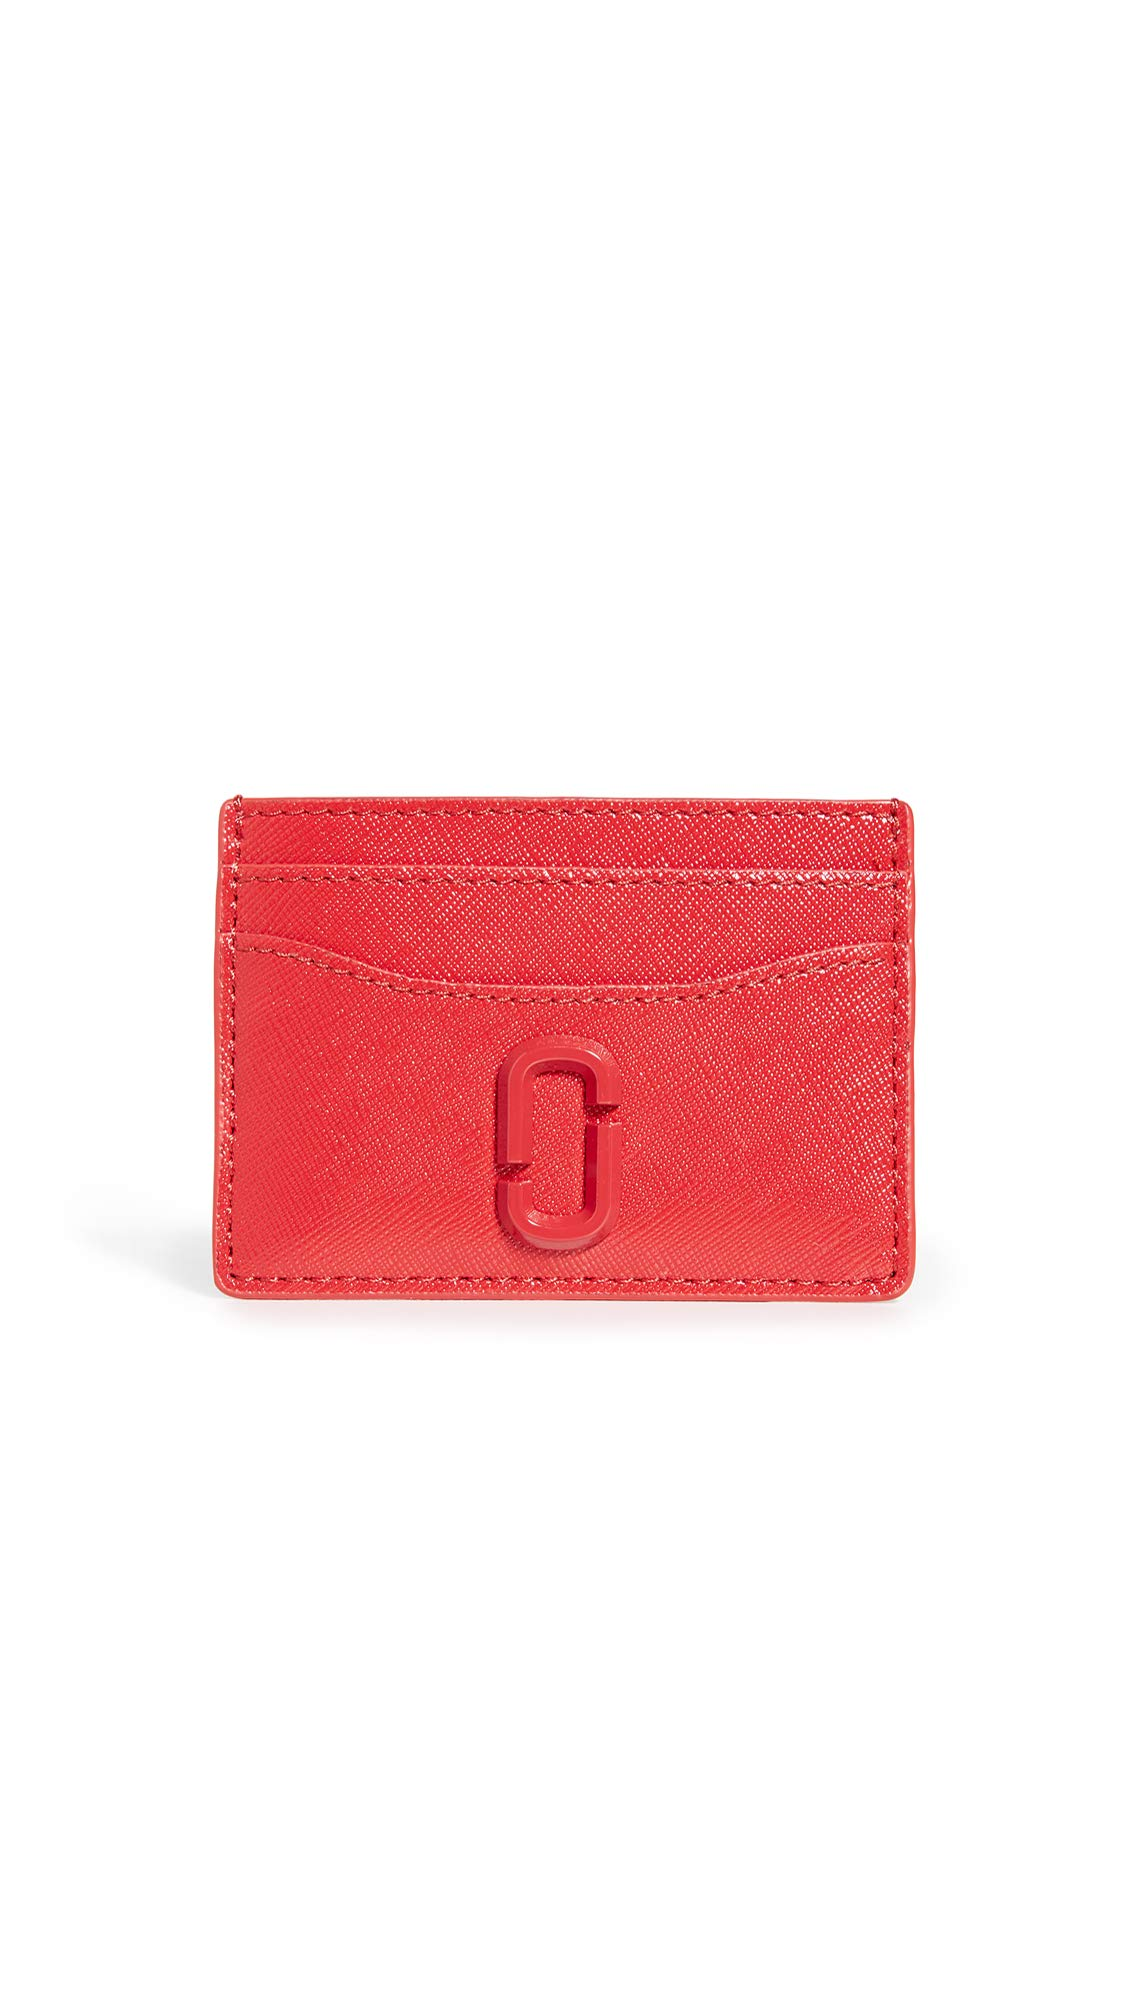 Marc Jacobs Women's Snapshot Card Case, Geranium, Red, Pink, One Size by Marc Jacobs